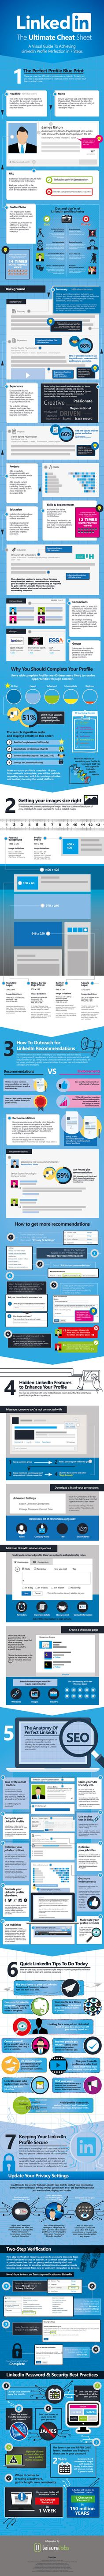 How to Craft the Perfect LinkedIn Profile: A Comprehensive Guide - #Infographic